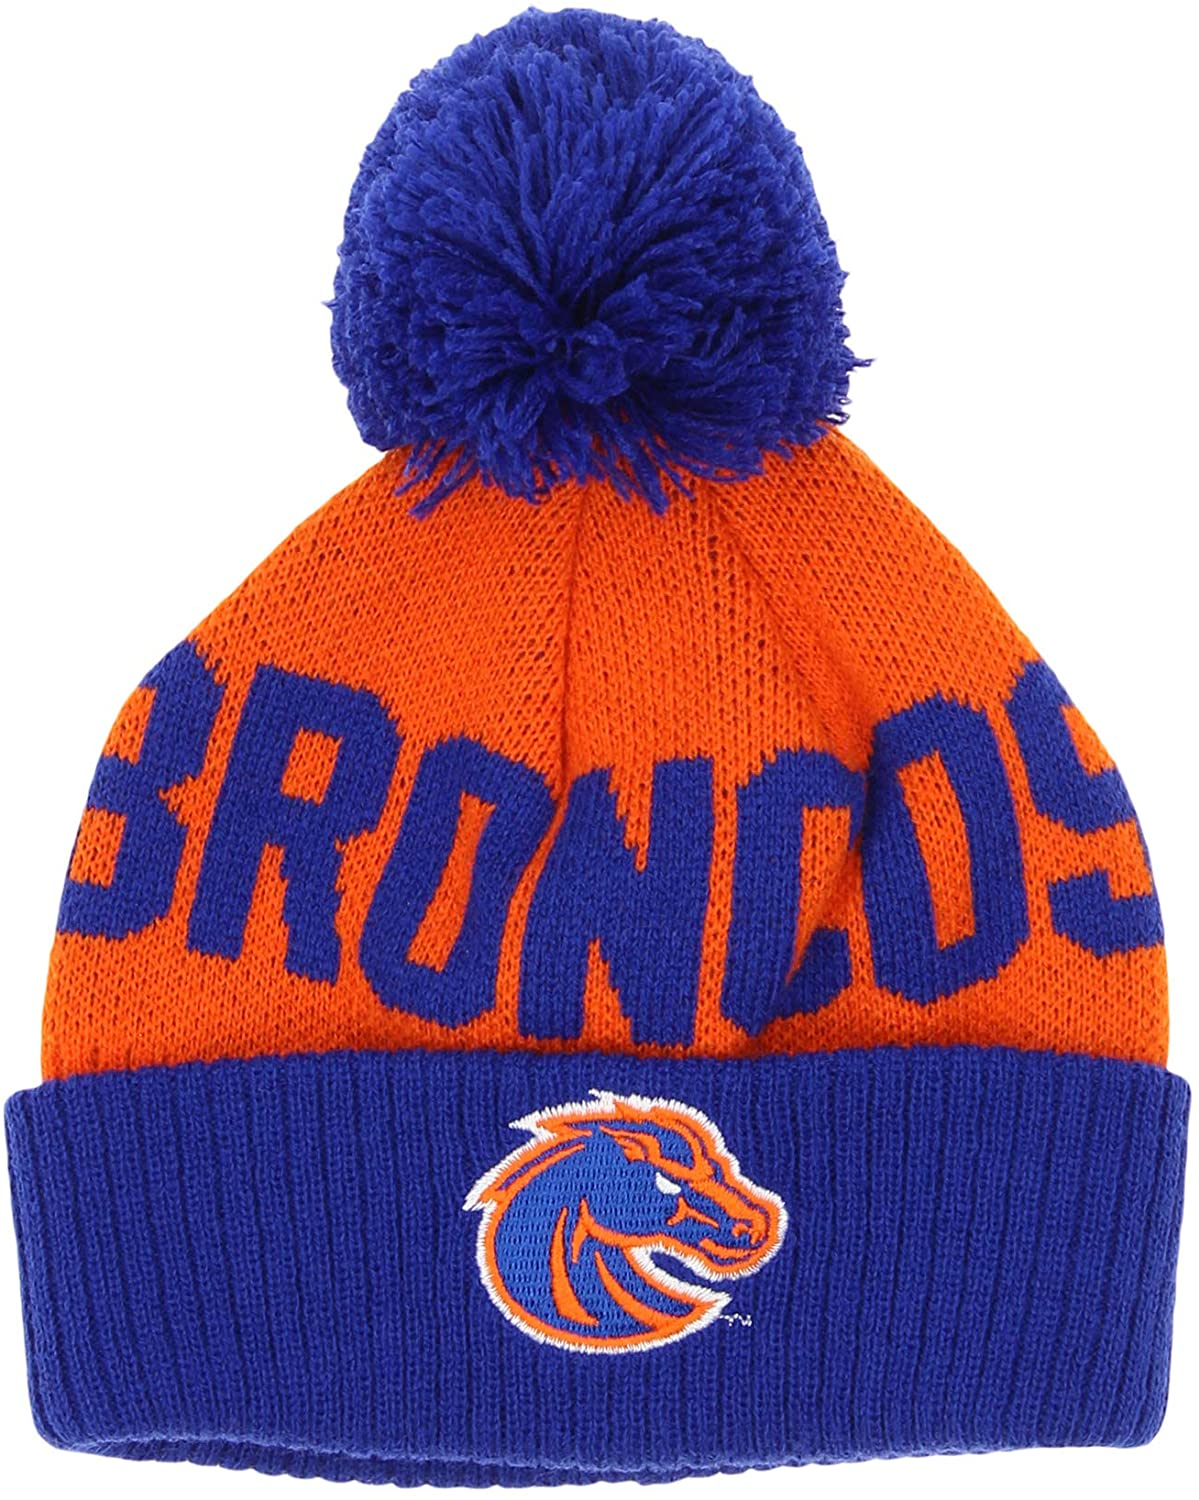 OuterStuff NCAA Toddlers Boise State Broncos Jacquard Cuffed Knit Pom Hat, 2T